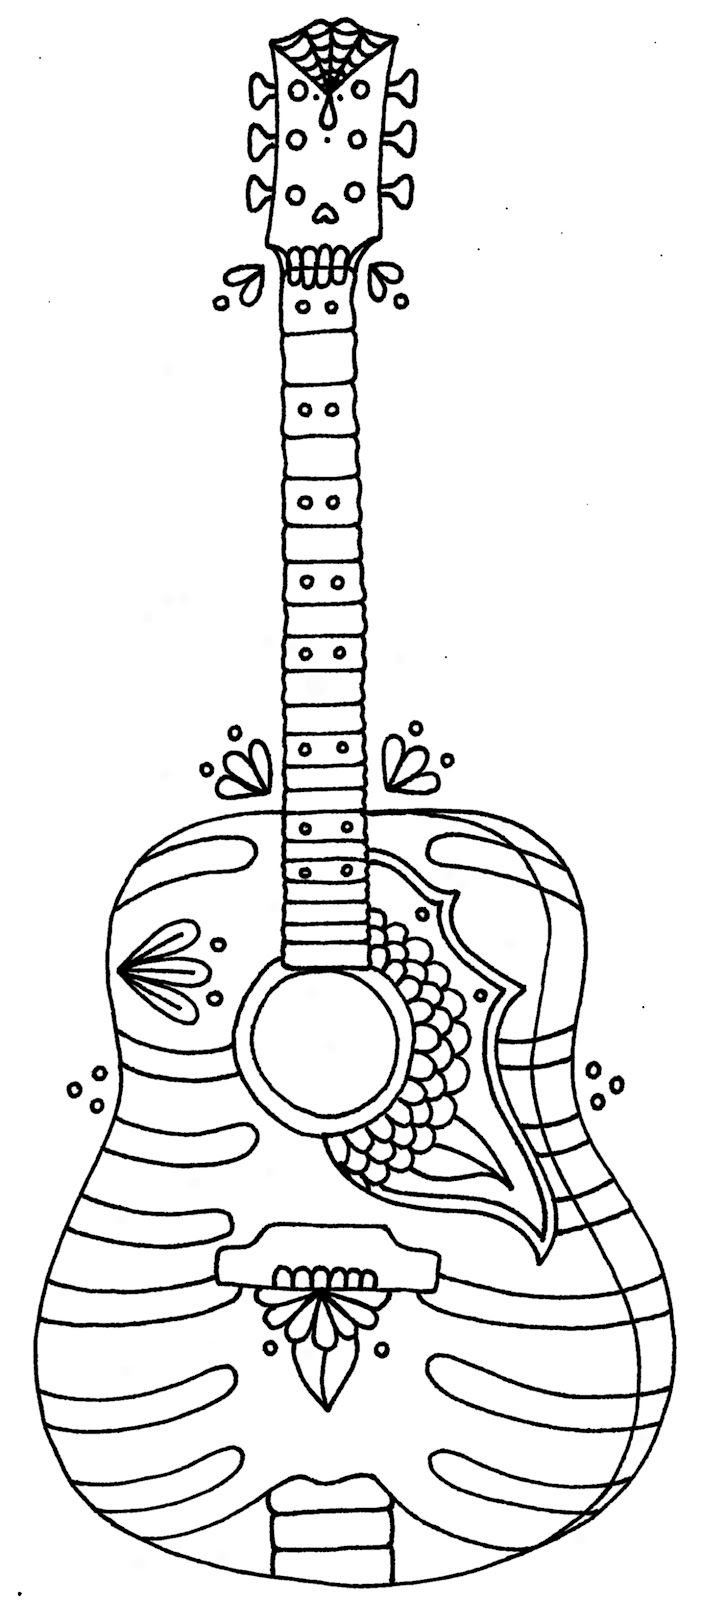 guitar coloring pages 9 | coloring pages for adults | pinterest